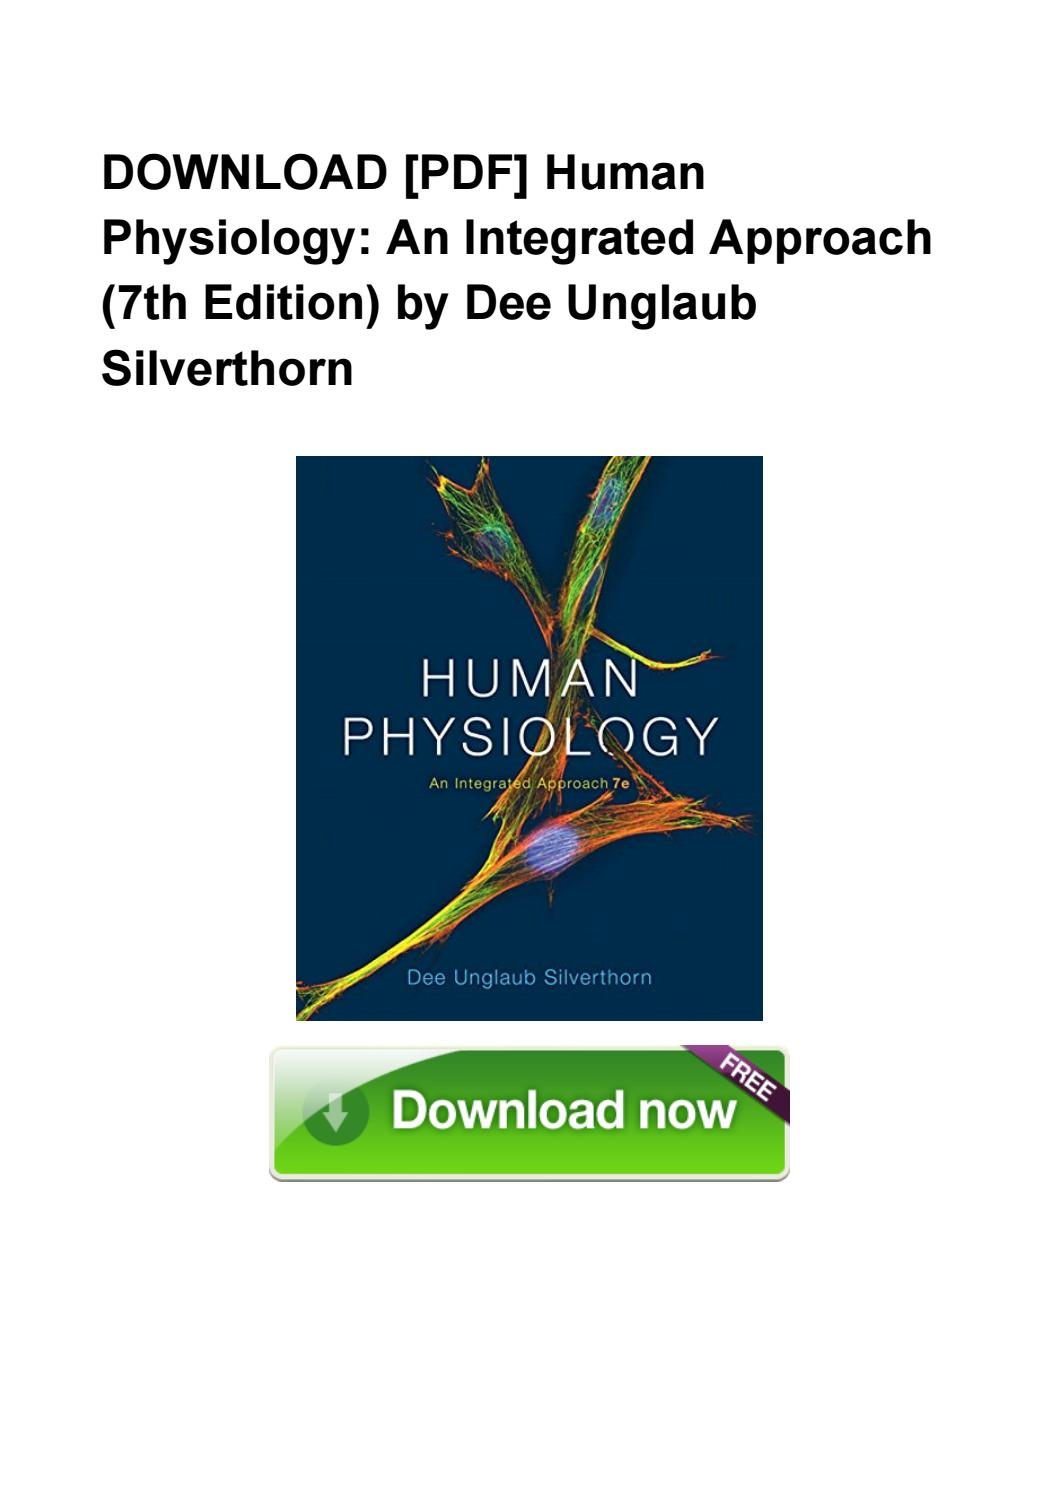 Human Physiology An Integrated Approach Pdf